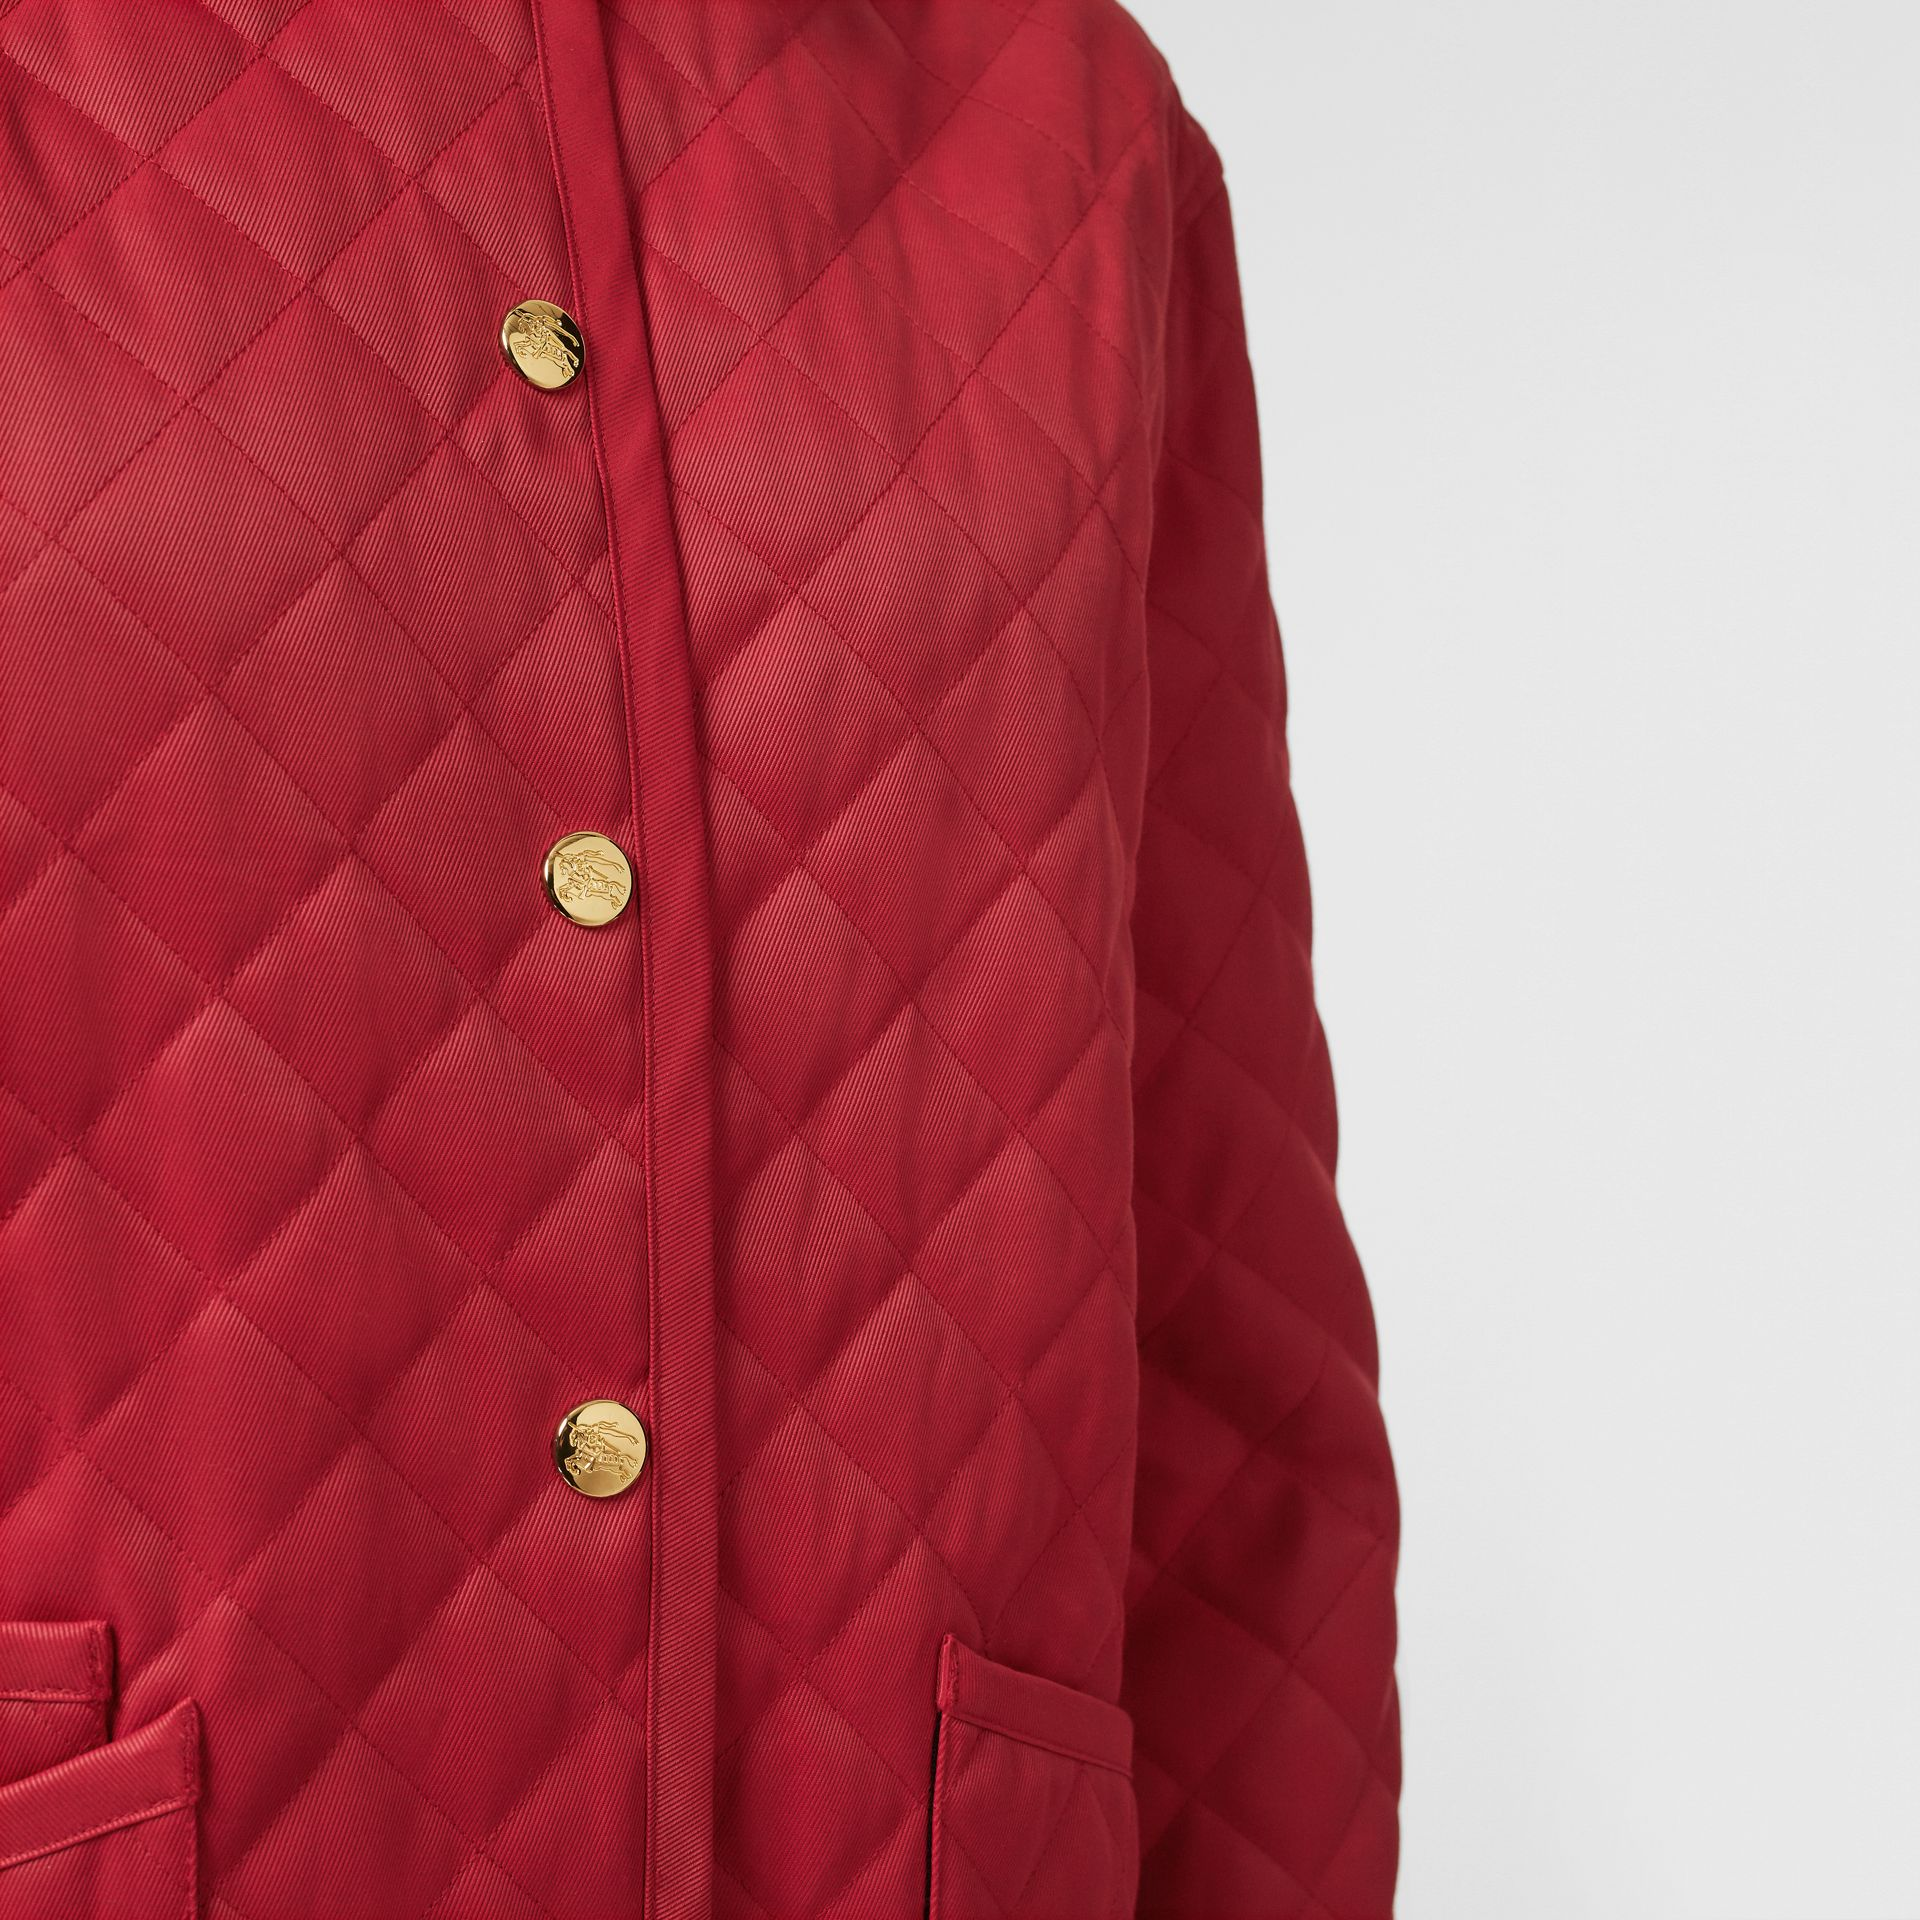 Diamond Quilted Barn Jacket in Red - Women | Burberry - gallery image 4